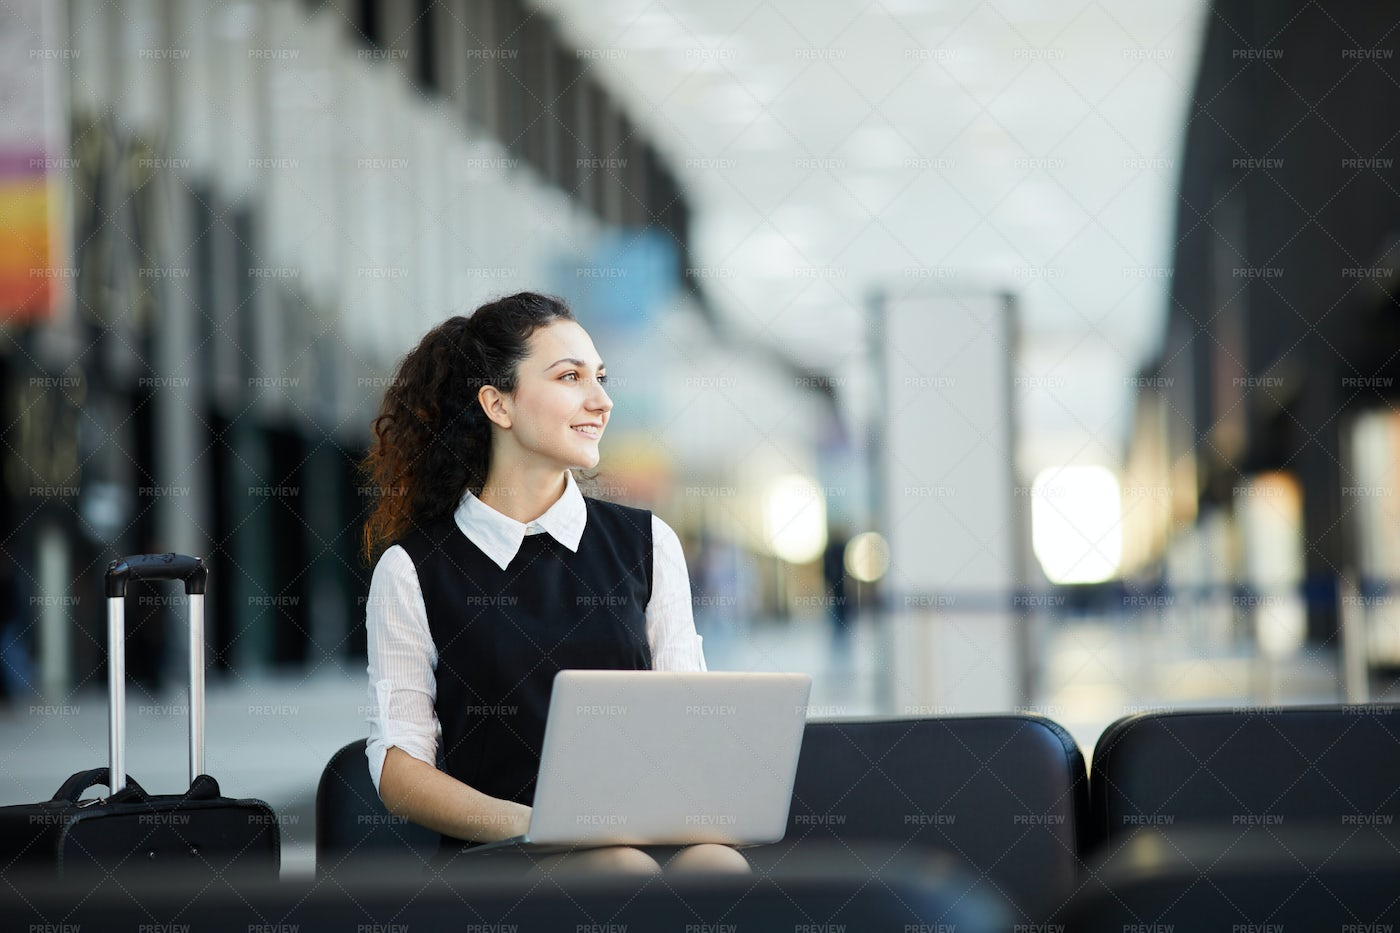 Tourist Using Laptop In Airport: Stock Photos